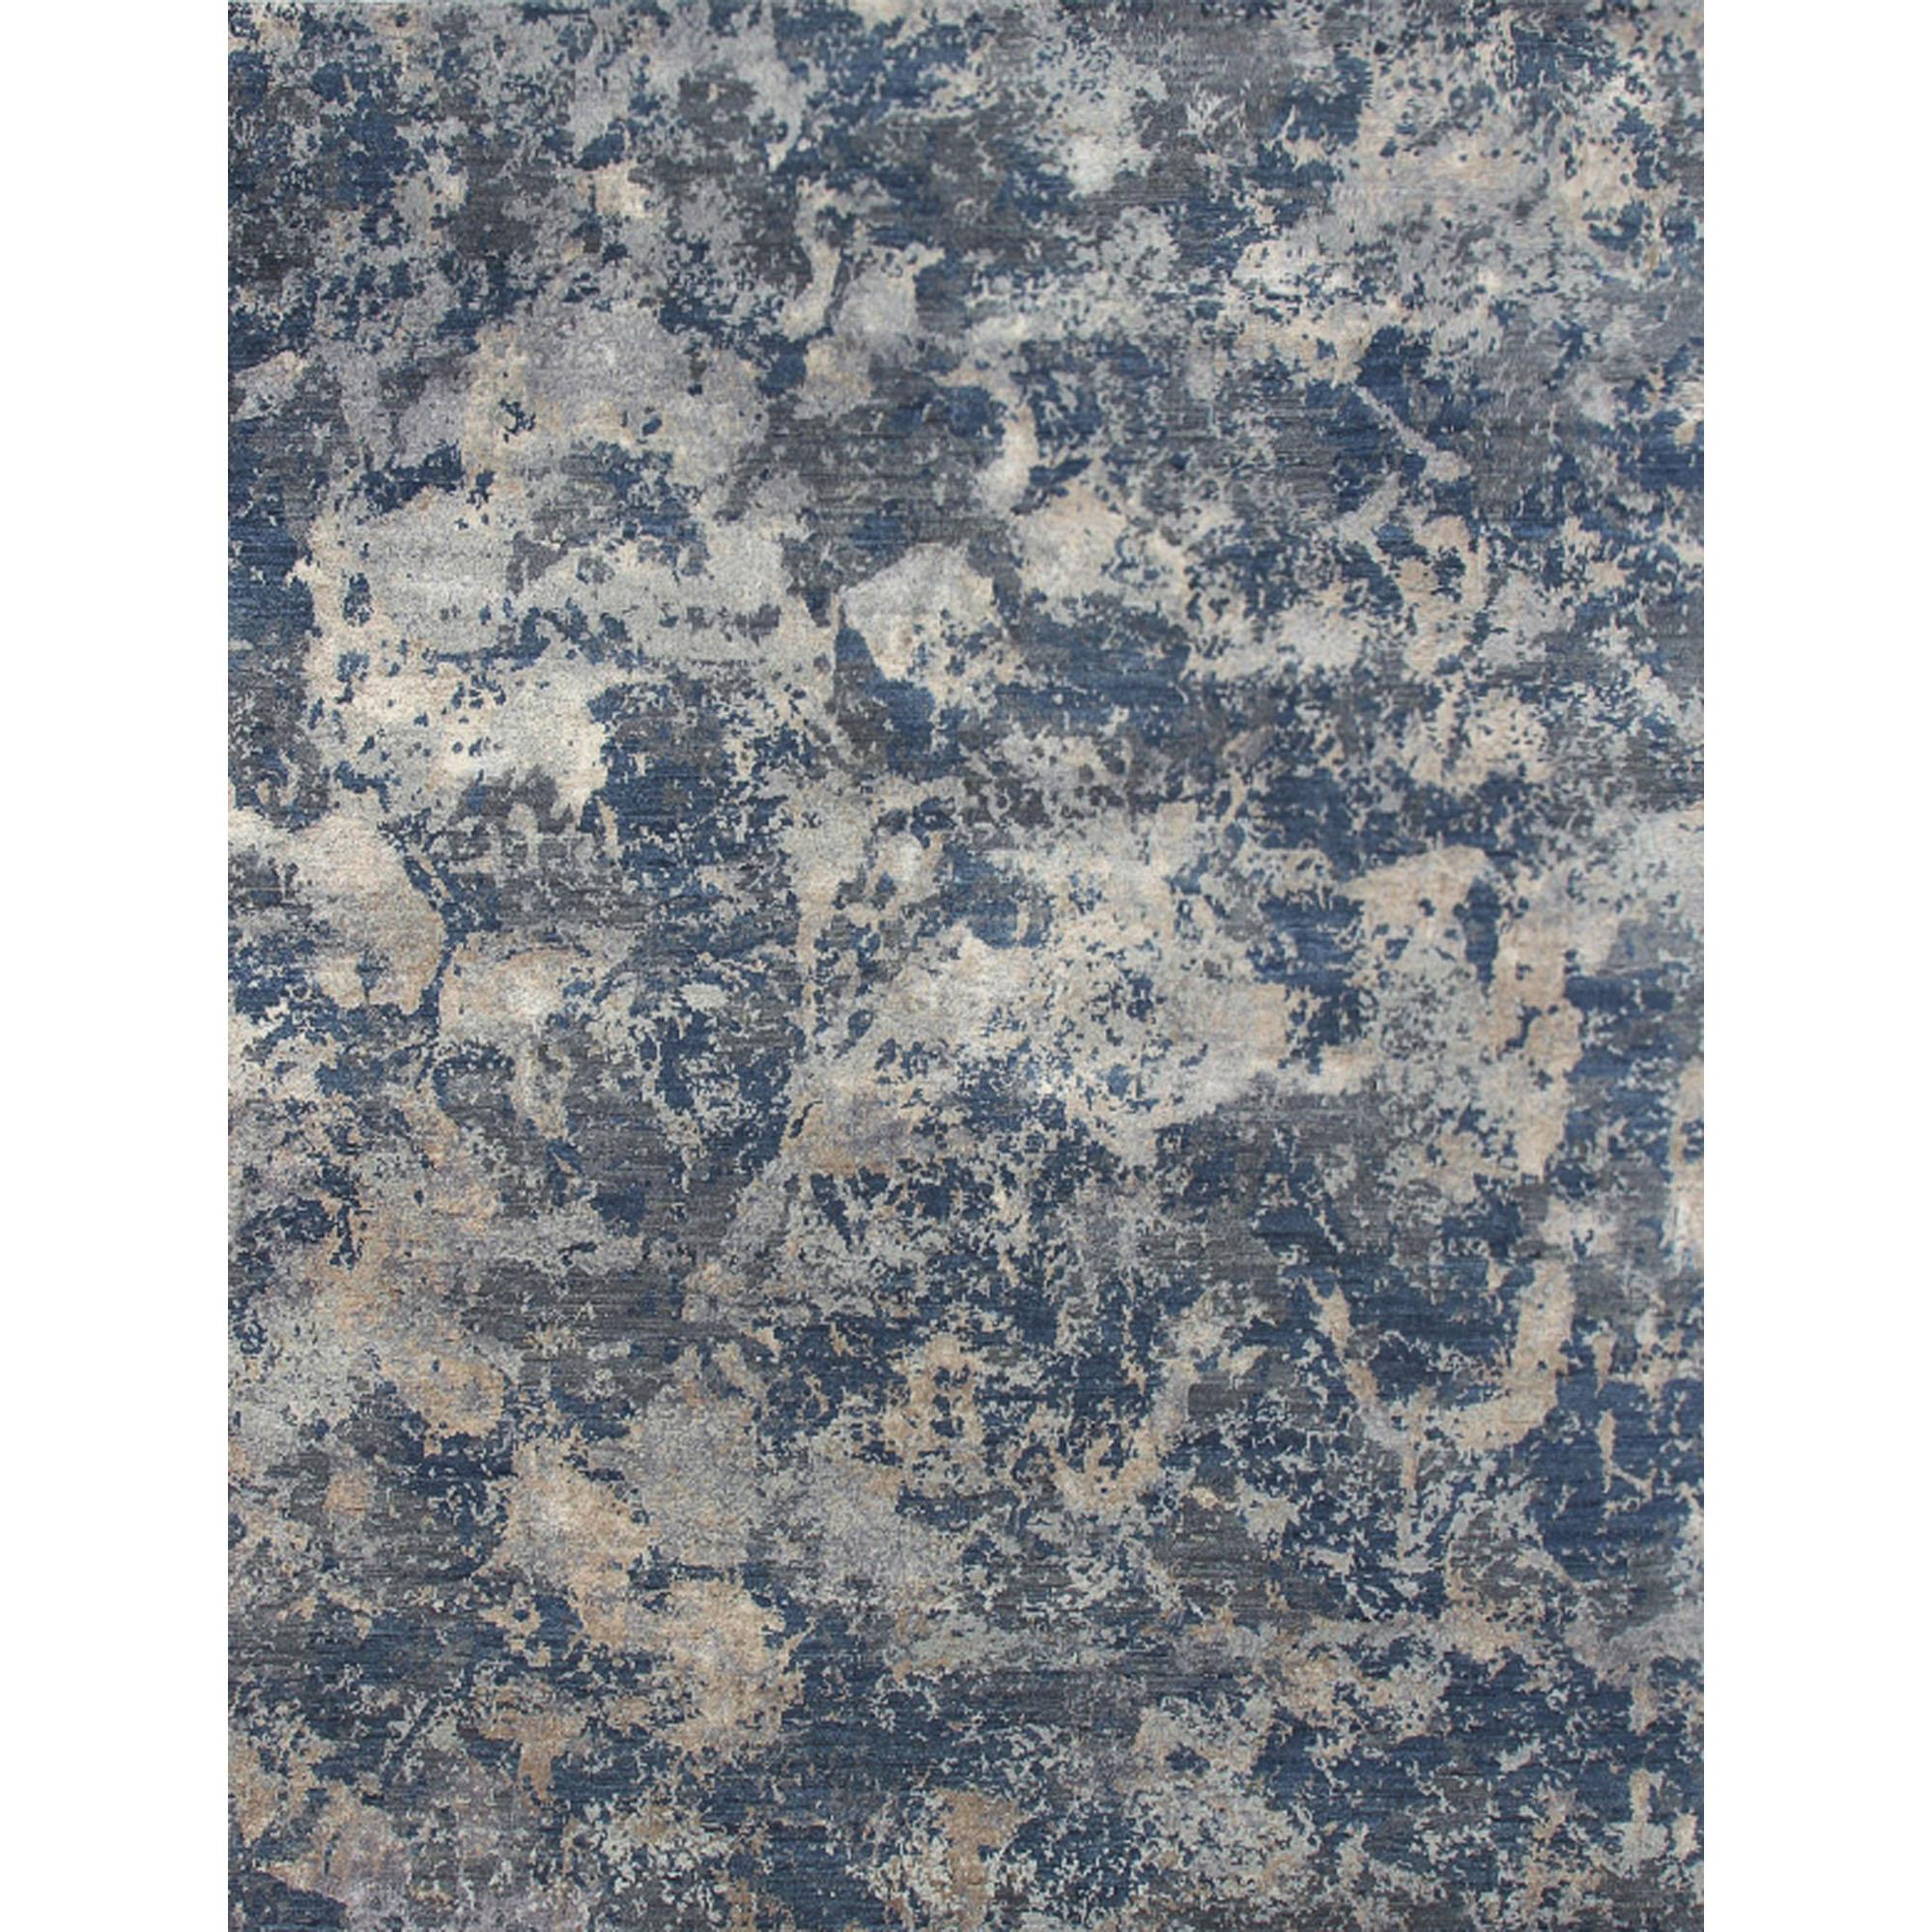 JAIPUR Rugs Chaos Theory By Kavi 8 x 10 Rug - Item Number: RUG117592